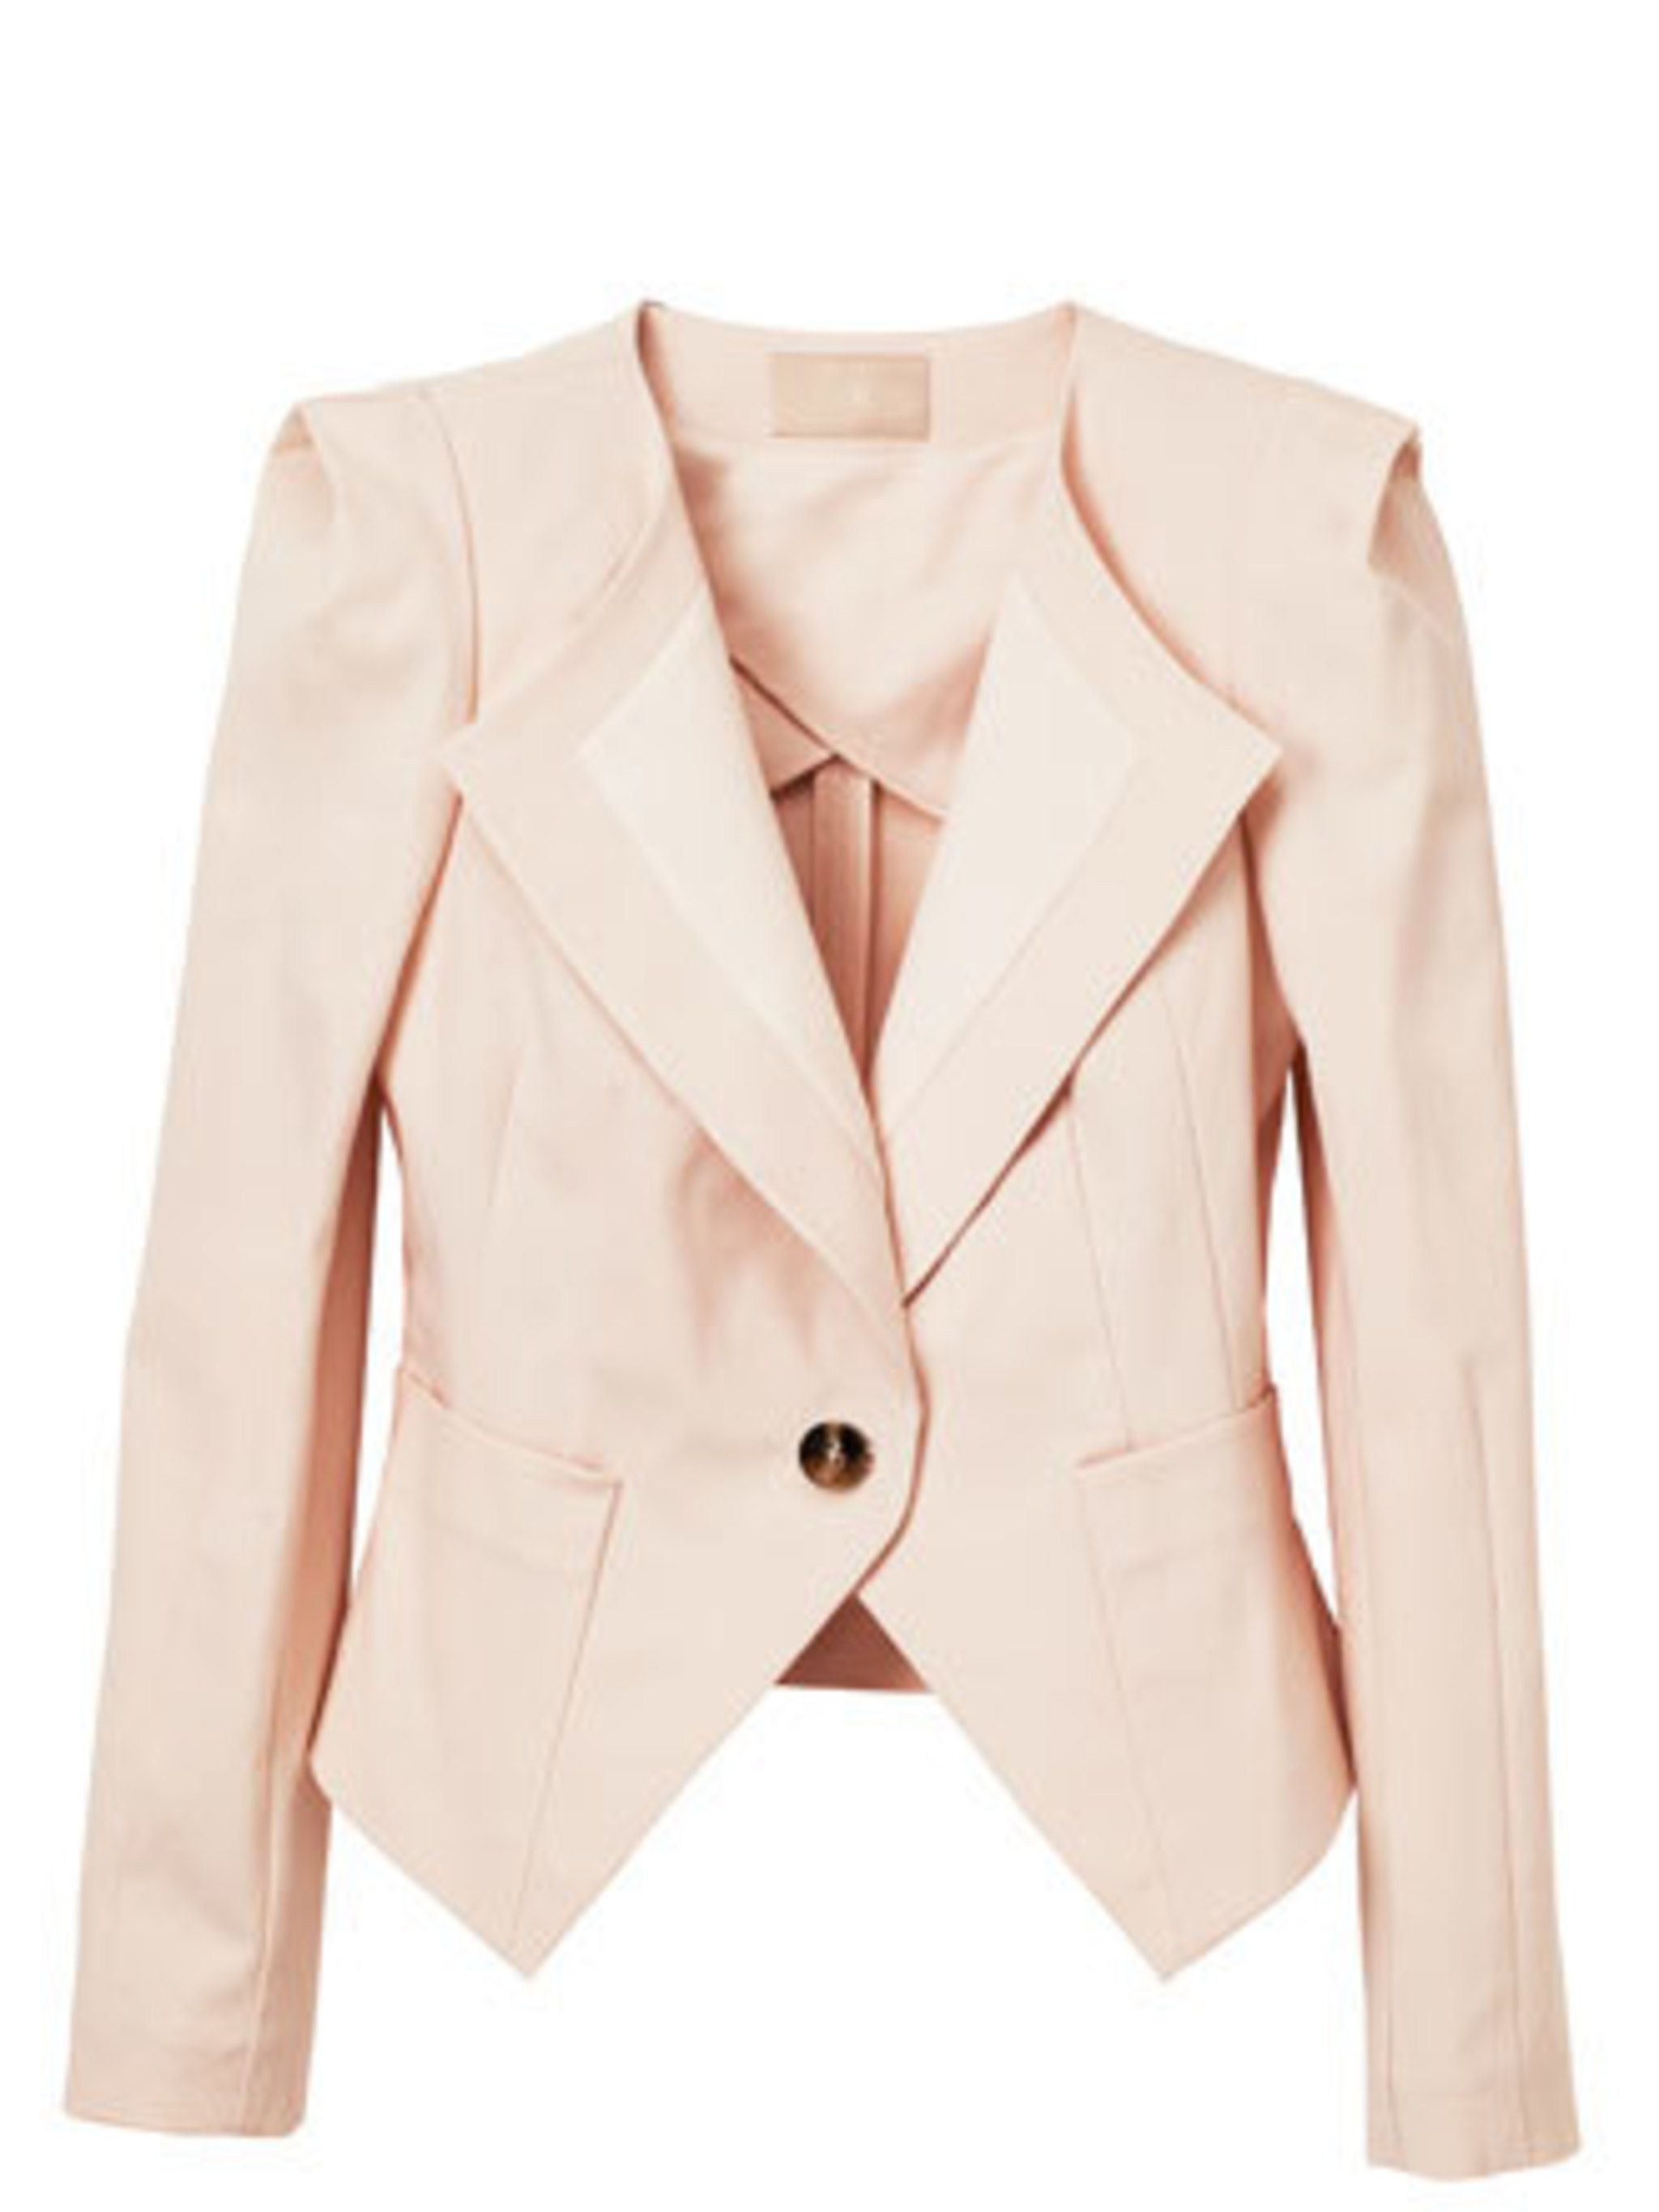 """<p>Summers aren't just about beach holidays and afternoons in the park - you need to kit your office wardrobe out too. This pastel jacket will liven up your staples but still ticks the 'office appropriate' box. </p><p>Jacket, £34.99 by <a href=""""http://www"""